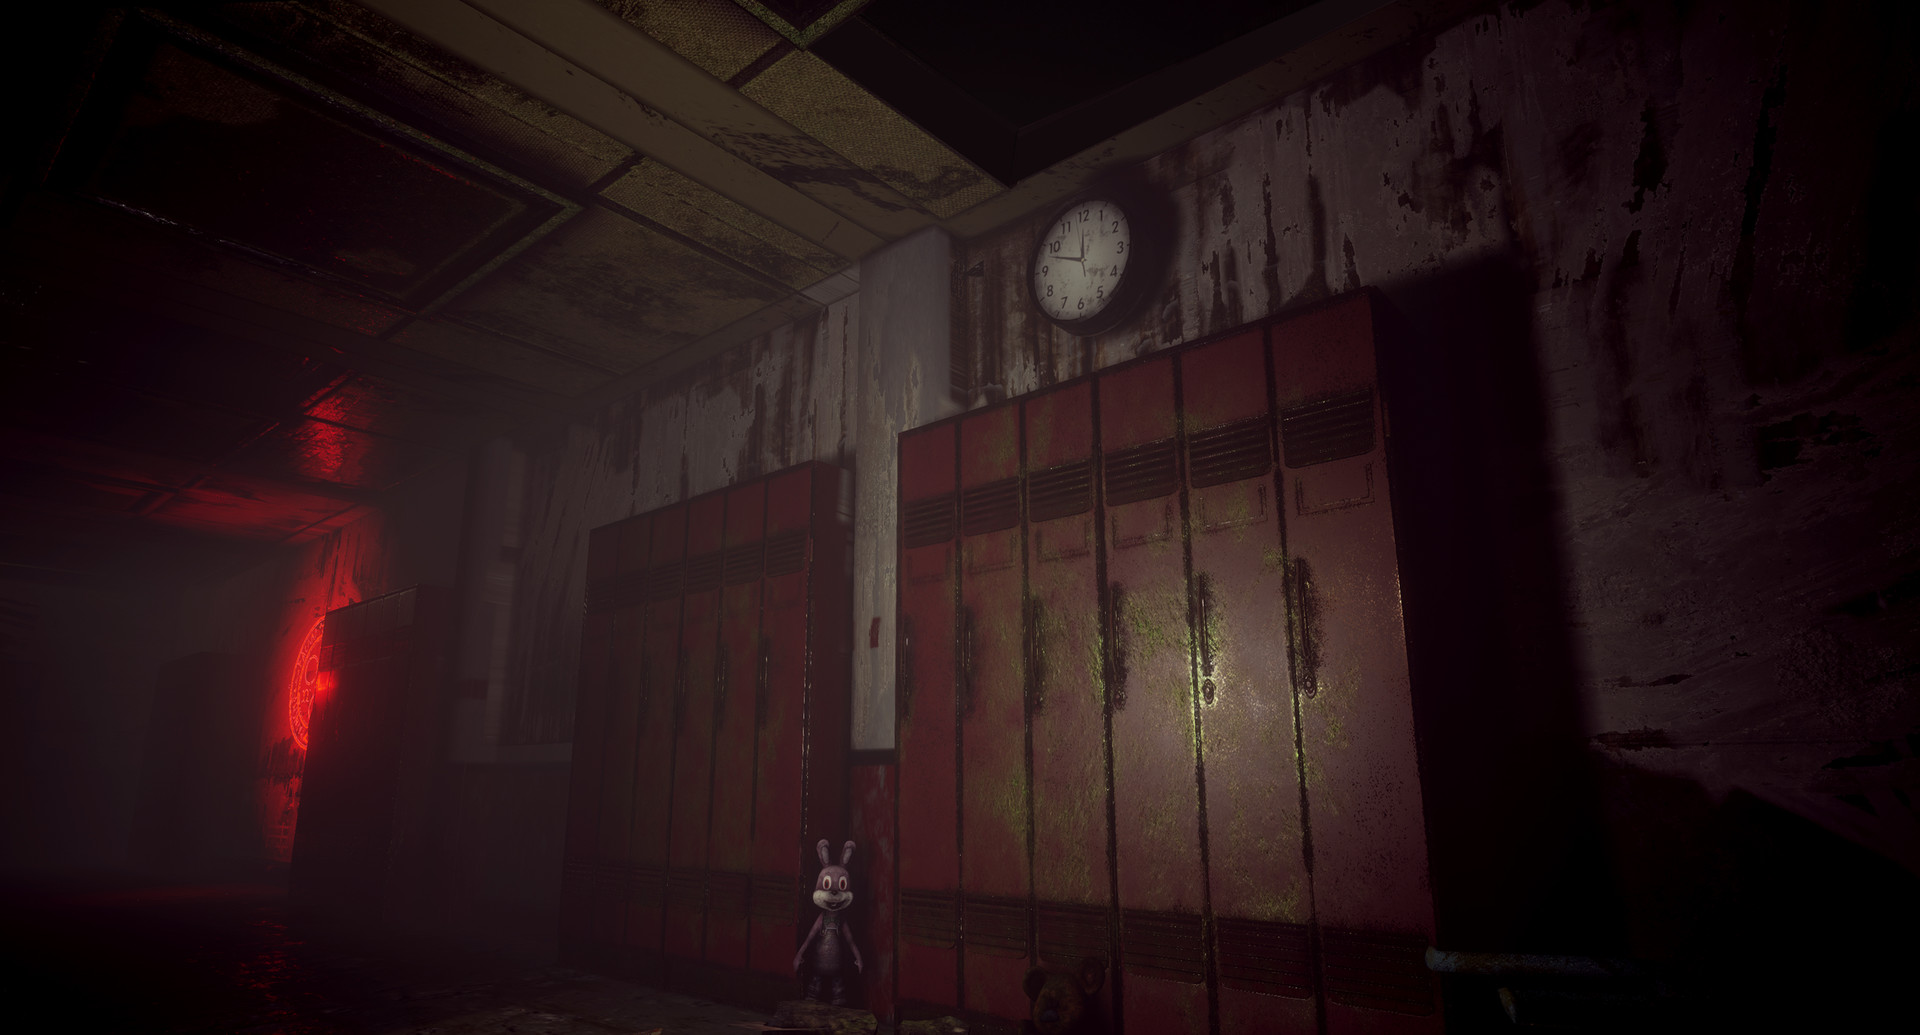 Silent Hill fan remake in Unreal Engine 4 is now available